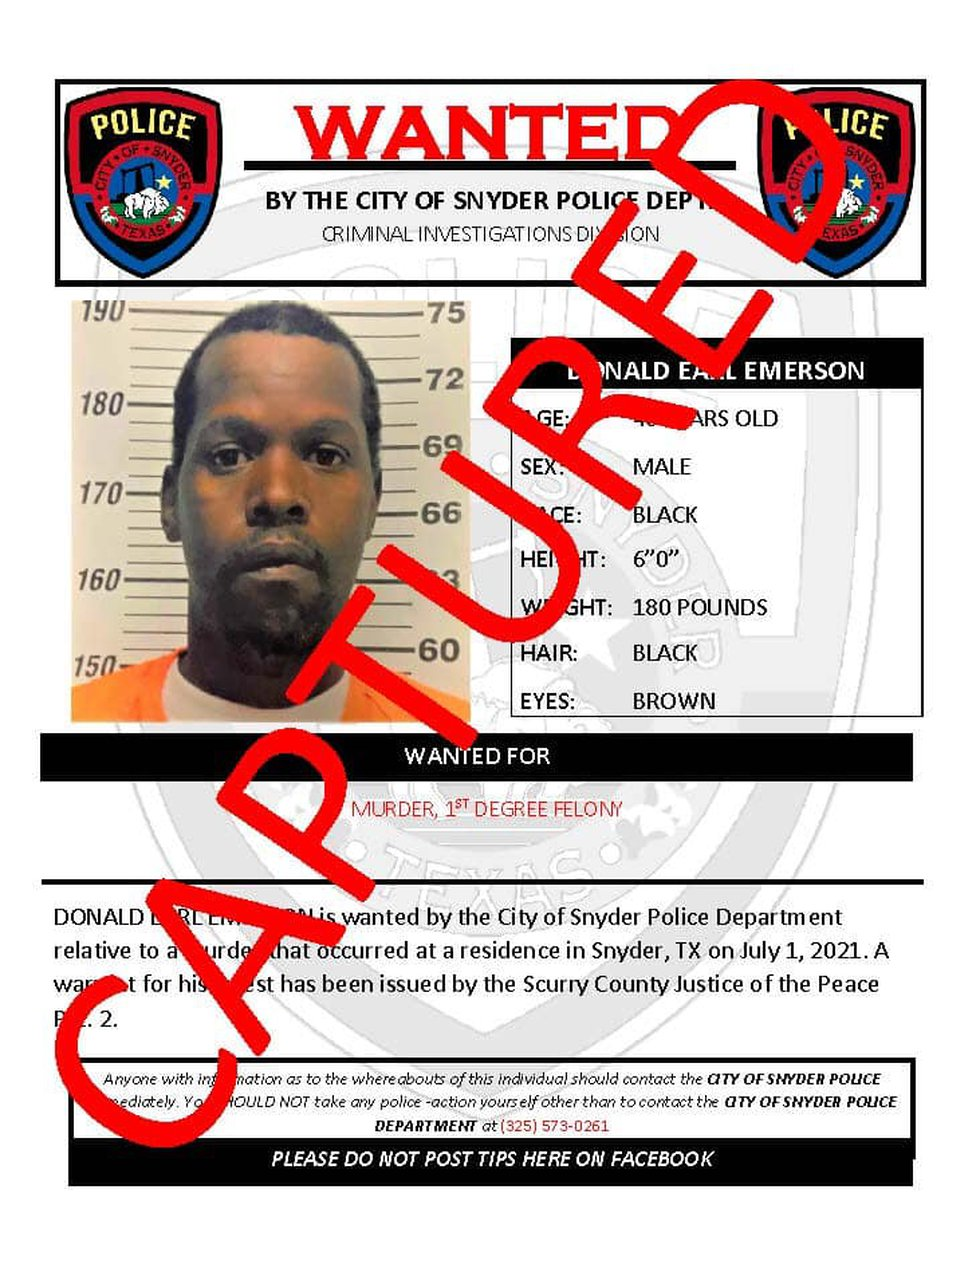 Snyder Police say Donald Earl Emerson, wanted for murder, has been taken into custody.